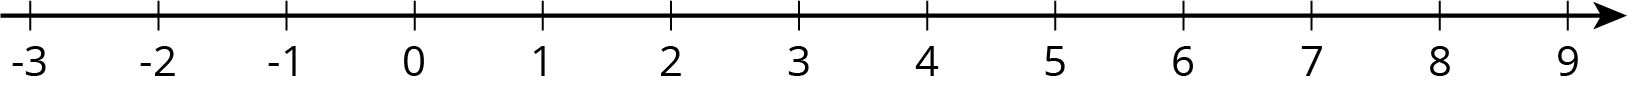 A numbre line that shows the integers from negative 3 to 9